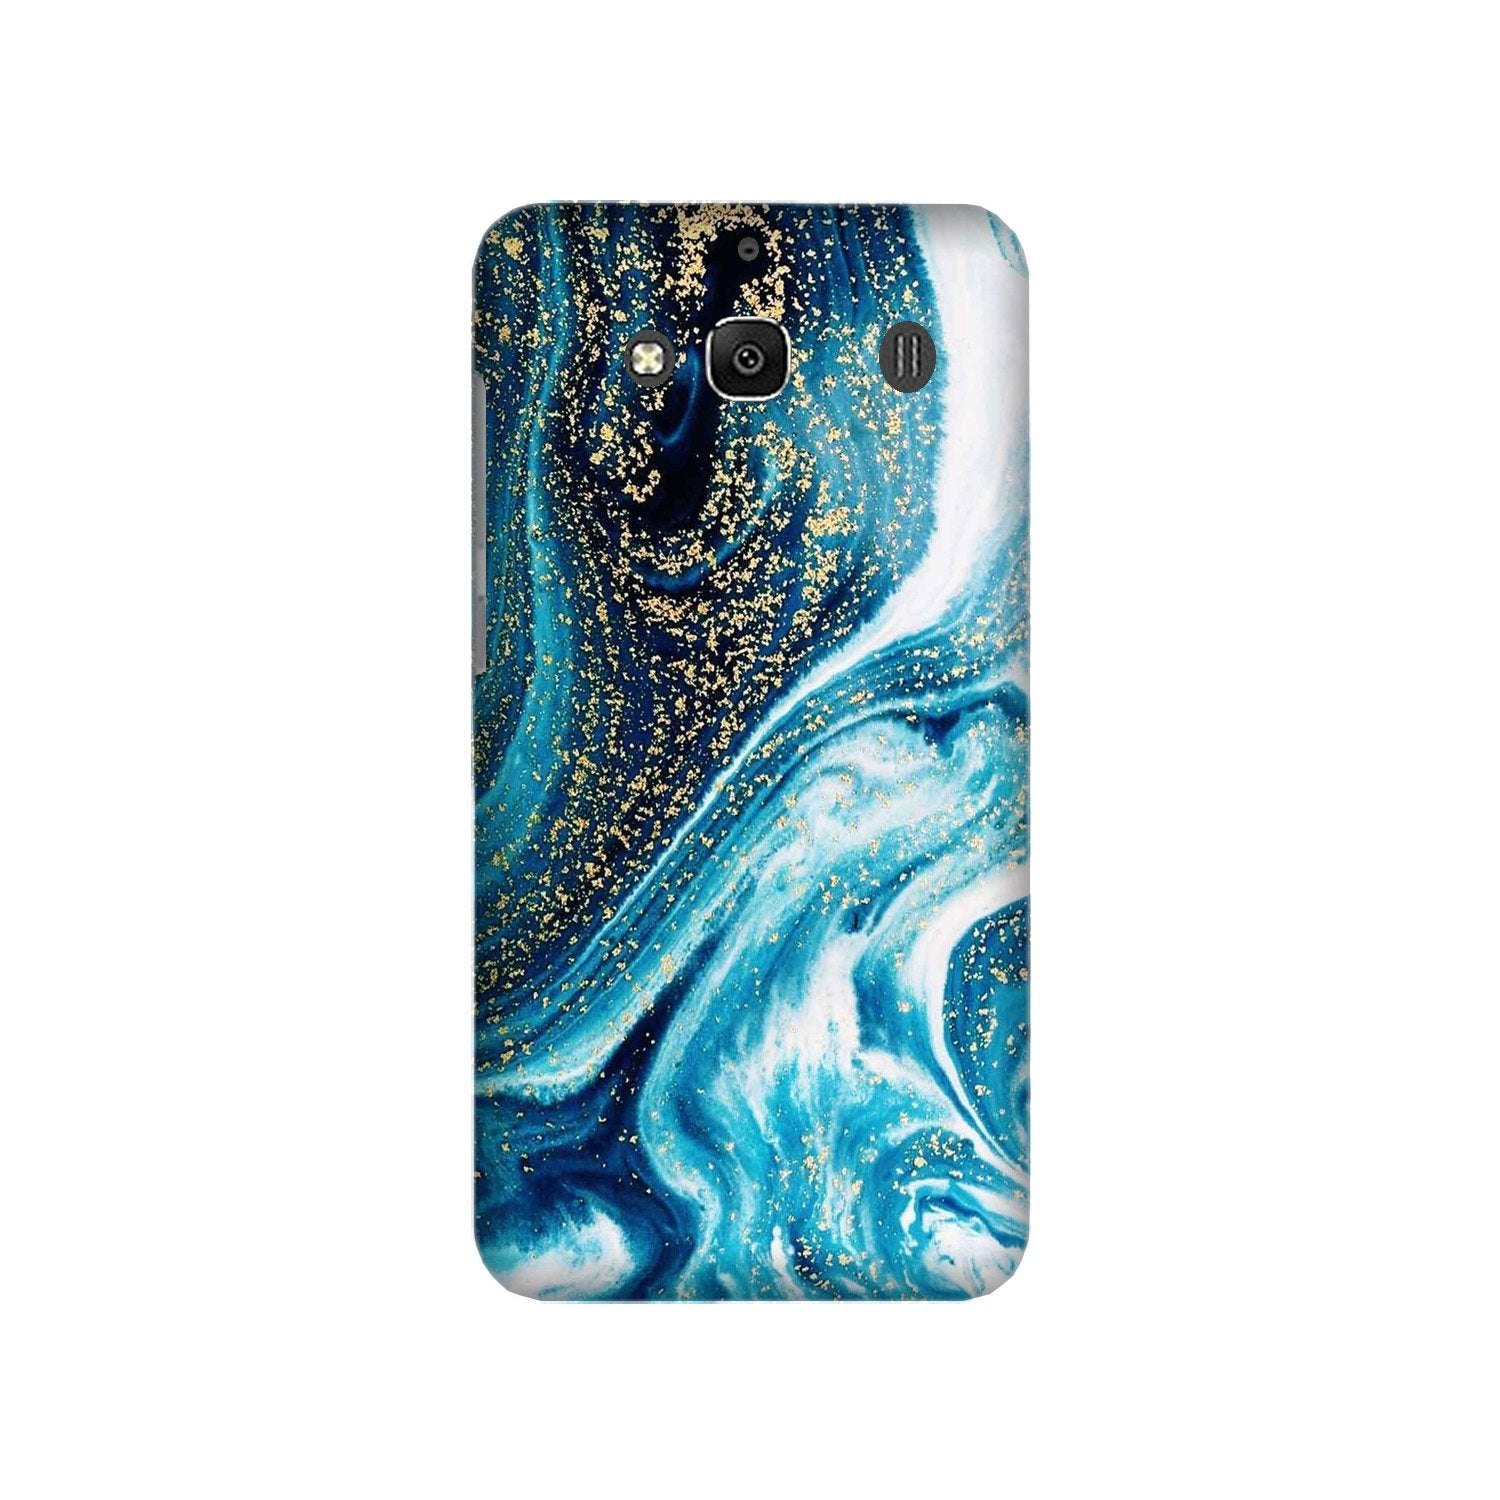 Marble Texture Mobile Back Case for Redmi 2 Prime  (Design - 308)